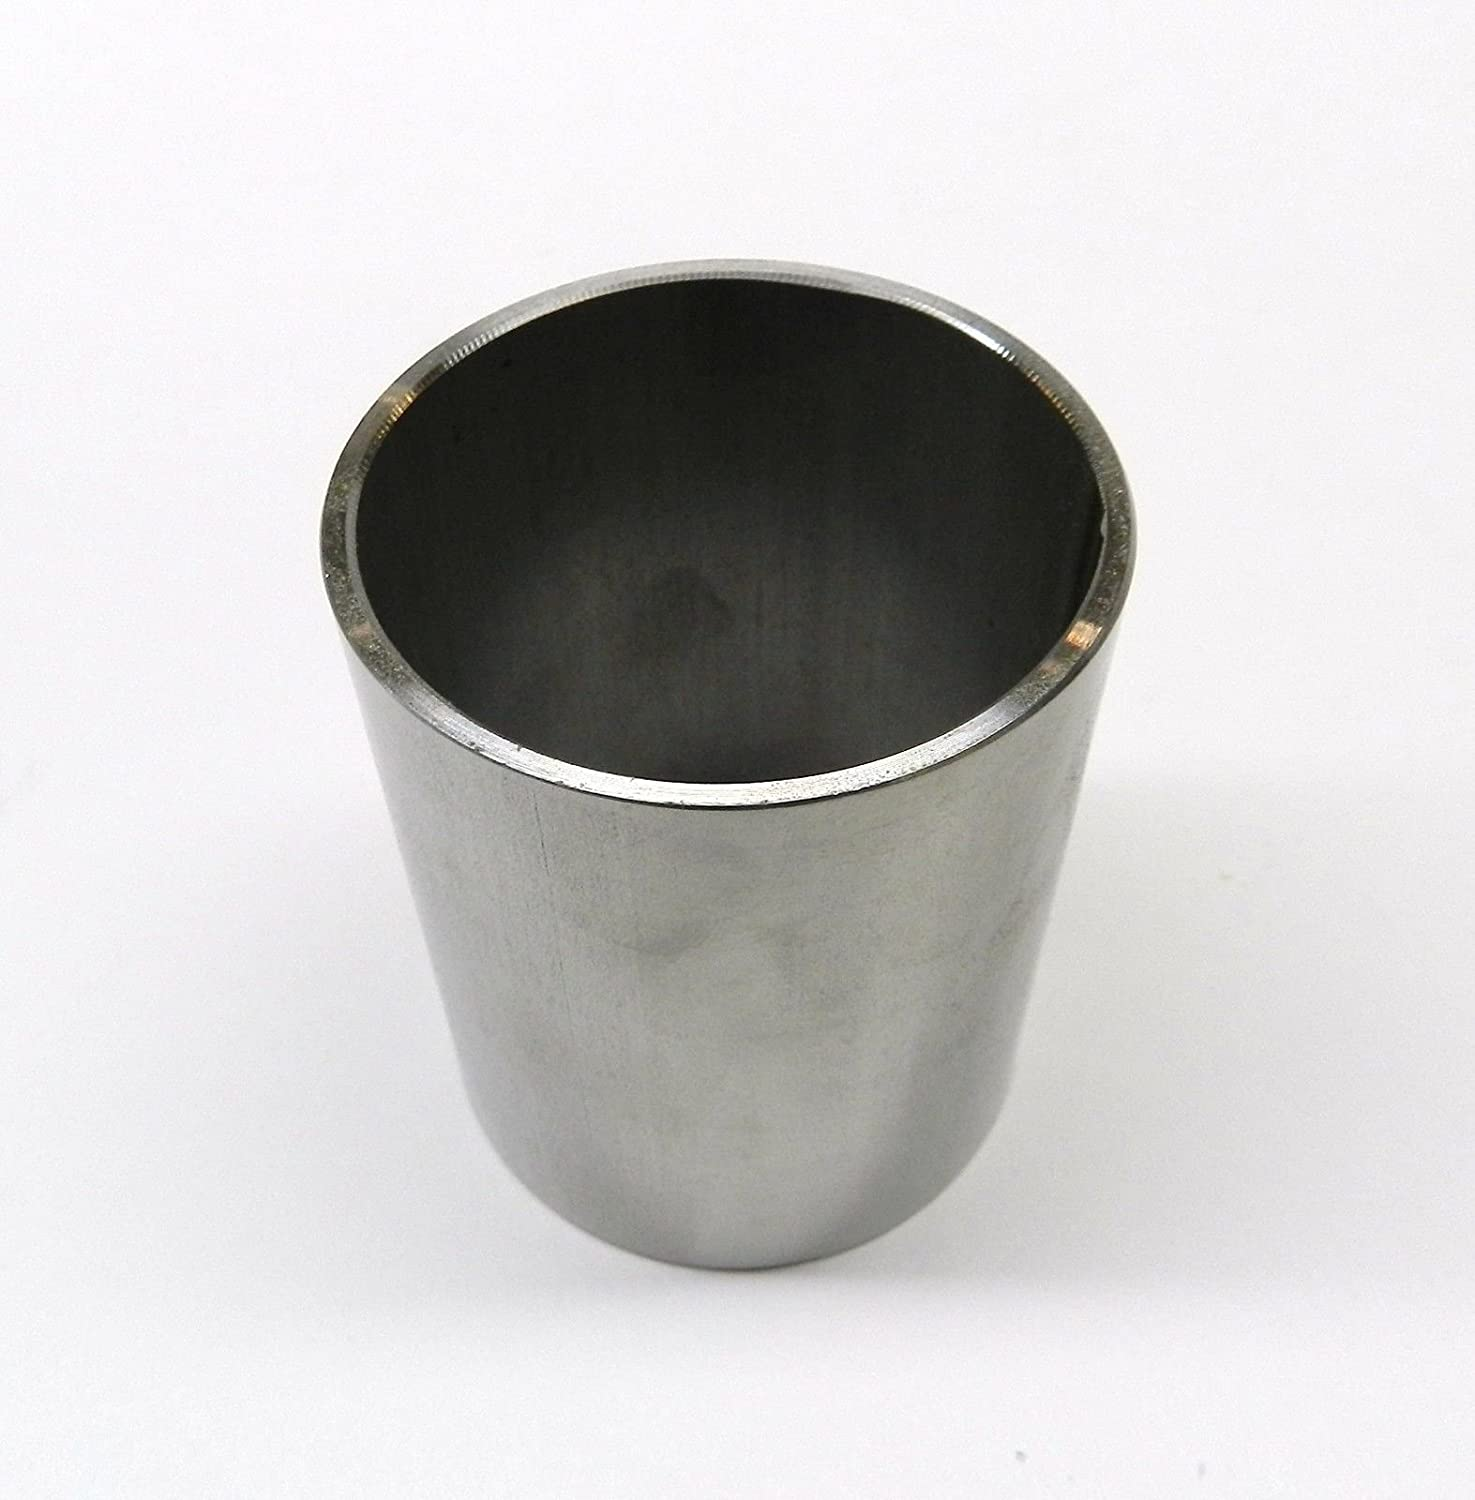 2 x 2-1//2 Stainless Steel Solid Wall Regular Lost Wax Centrifugal Jewelry Casting Flask